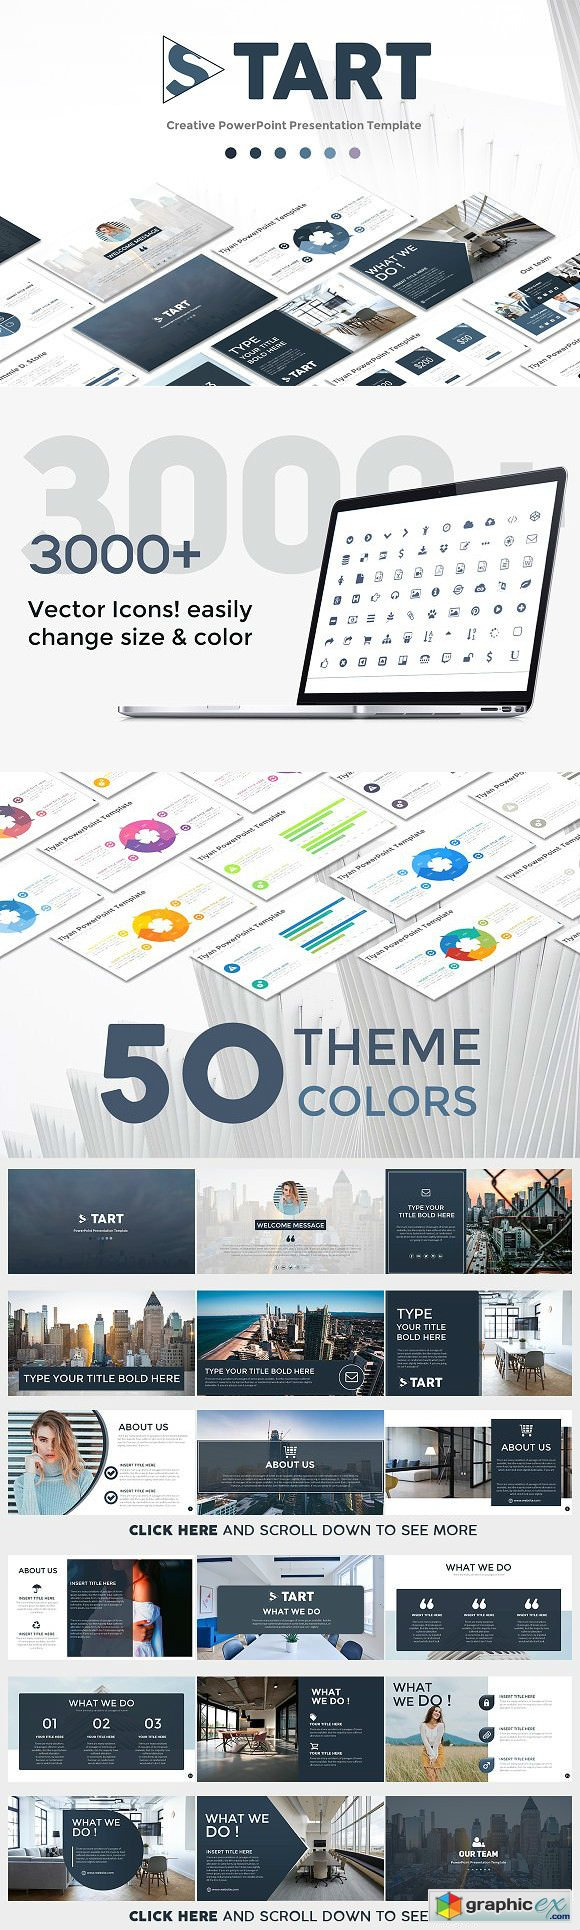 START PowerPoint Template